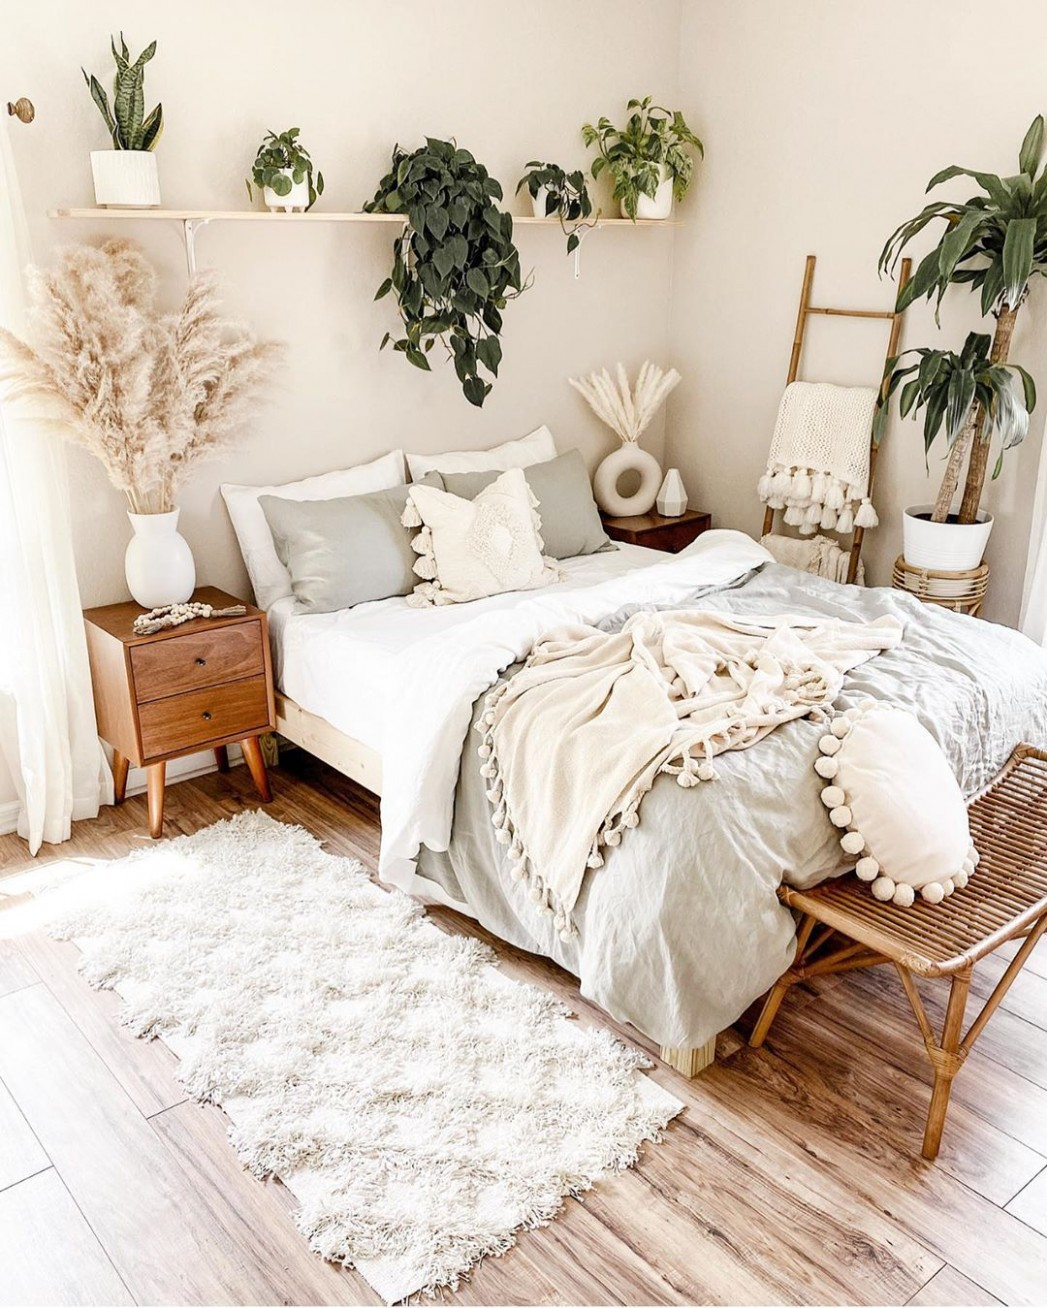 pretty bedroom looking prettier with all the plants in it  - Bedroom Ideas Plants